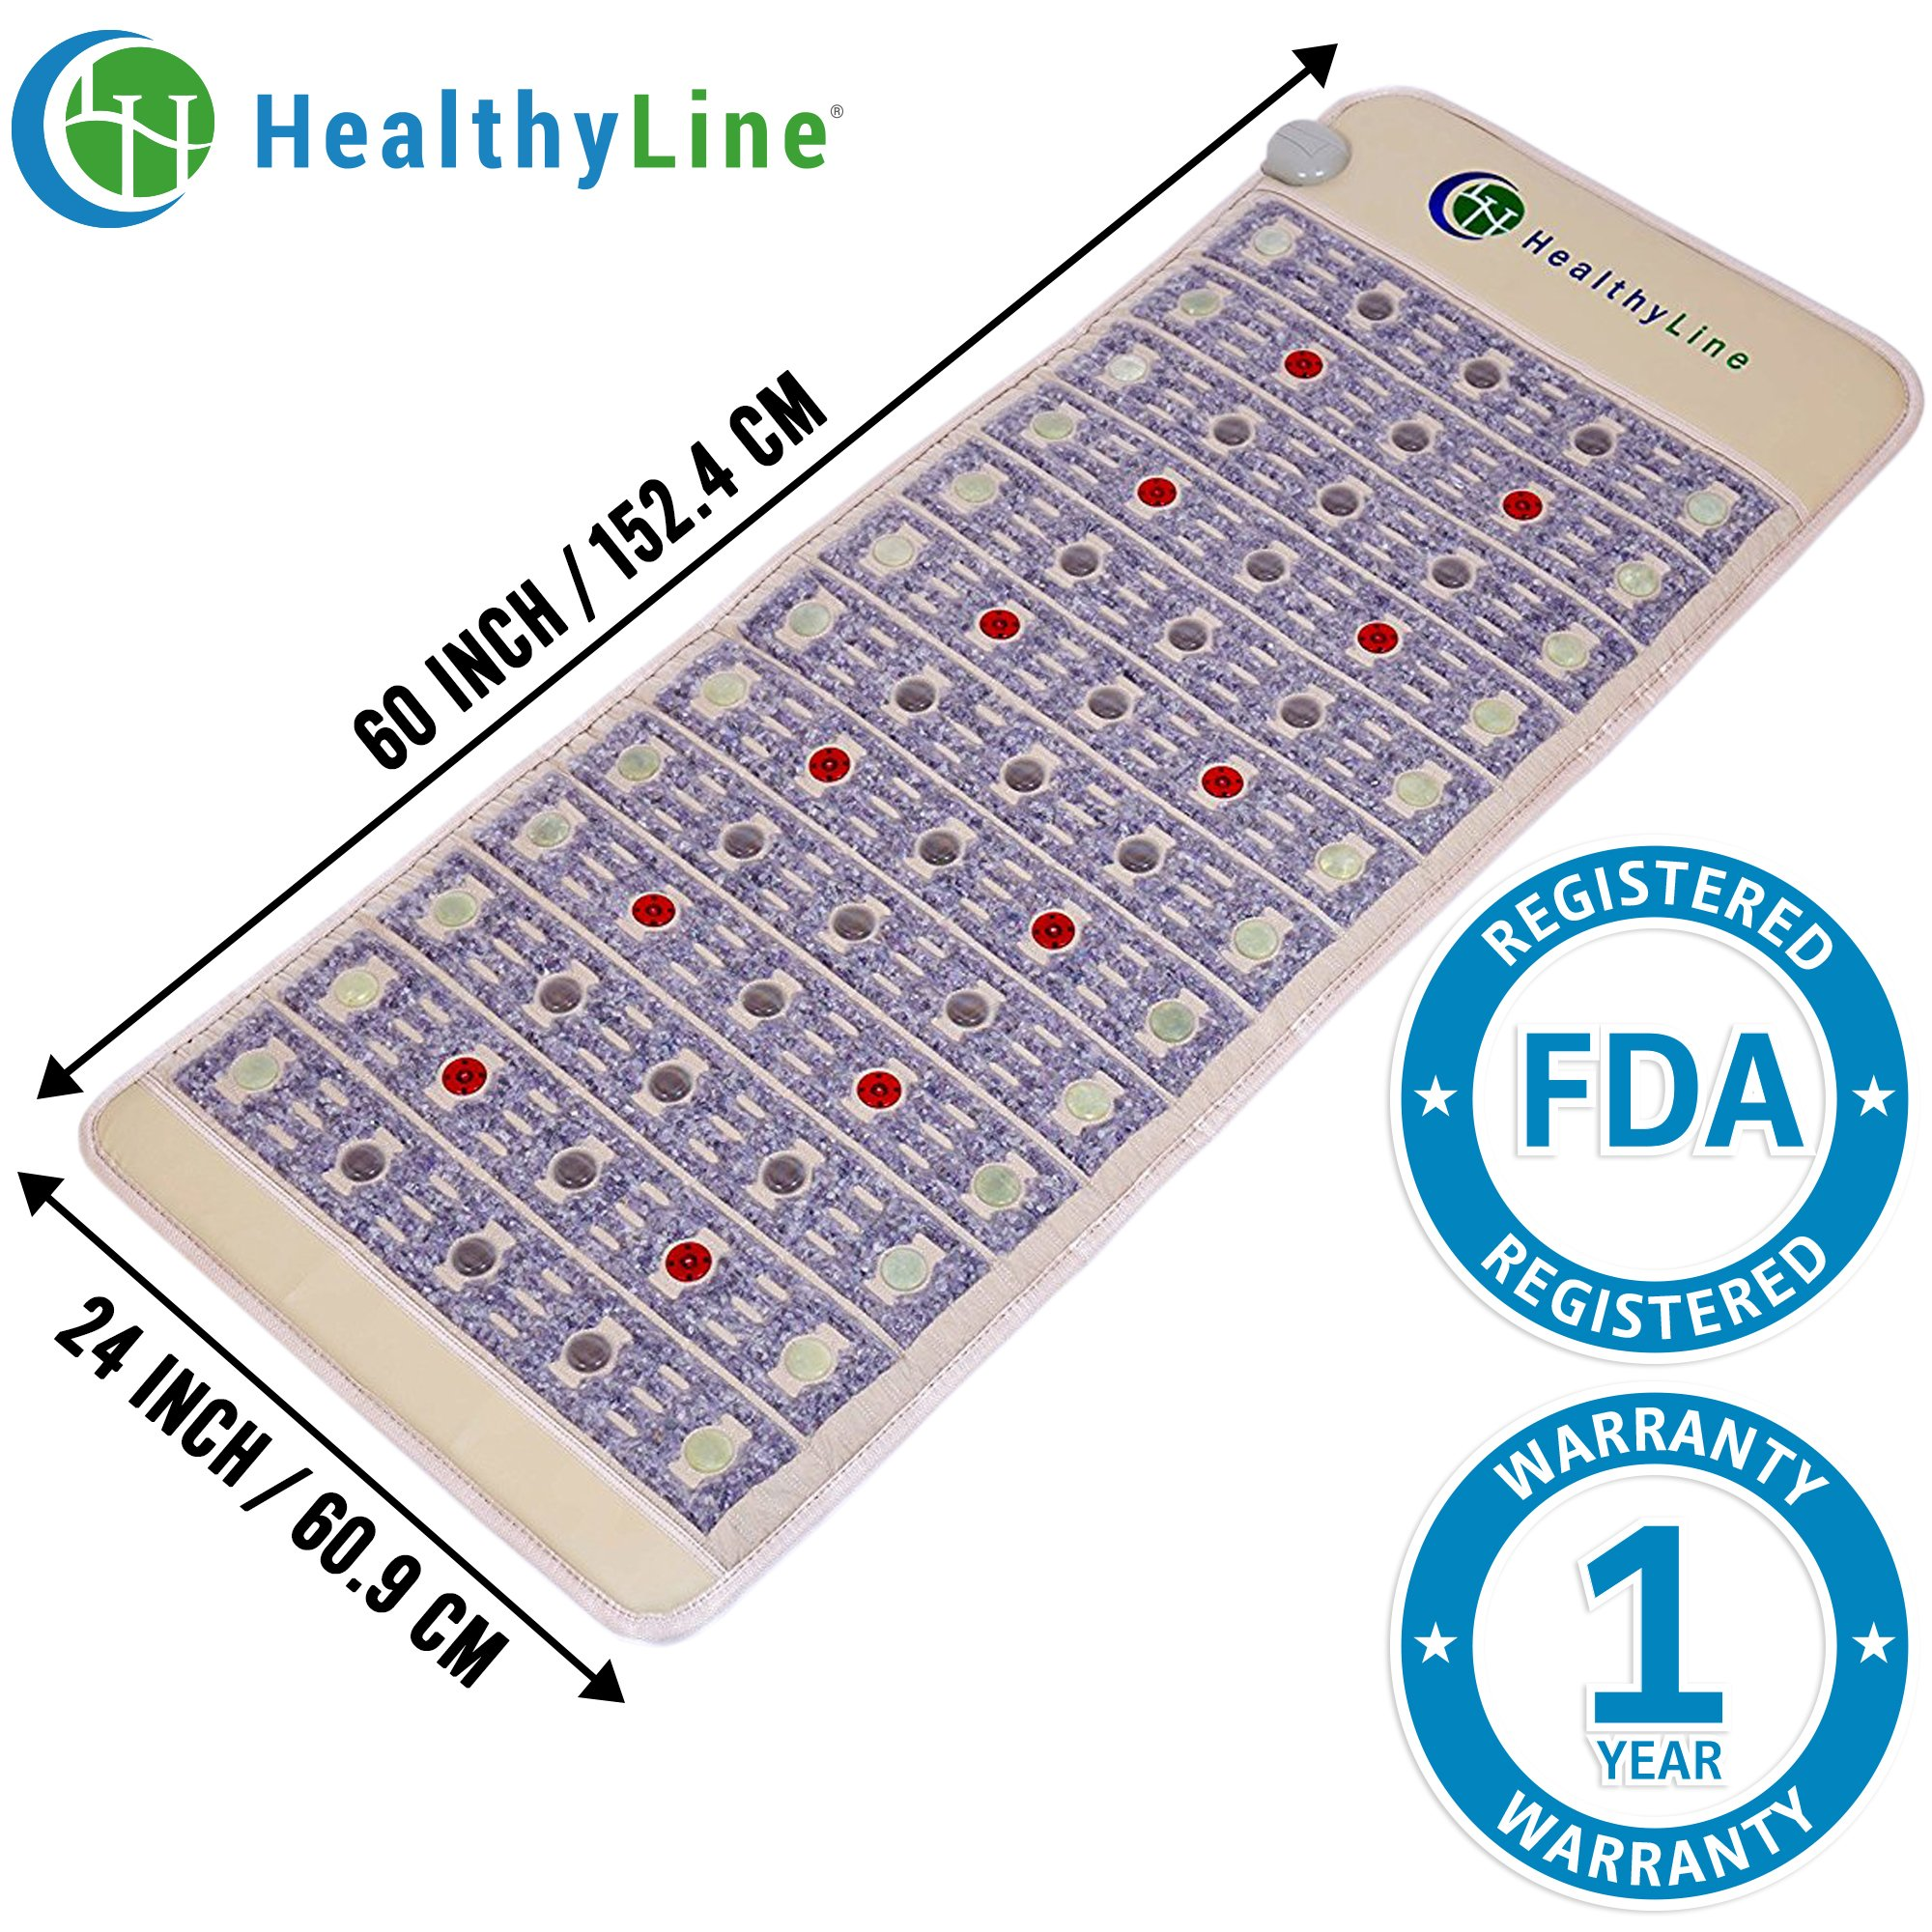 HealthyLine Natural Infrared Heating Mat - Pain Relief - Firm (60″ x 24″) - PEMF - Photon Red Light - Negative Ions - Amethyst, Jade & Tourmaline Ceramic Stones - US FDA